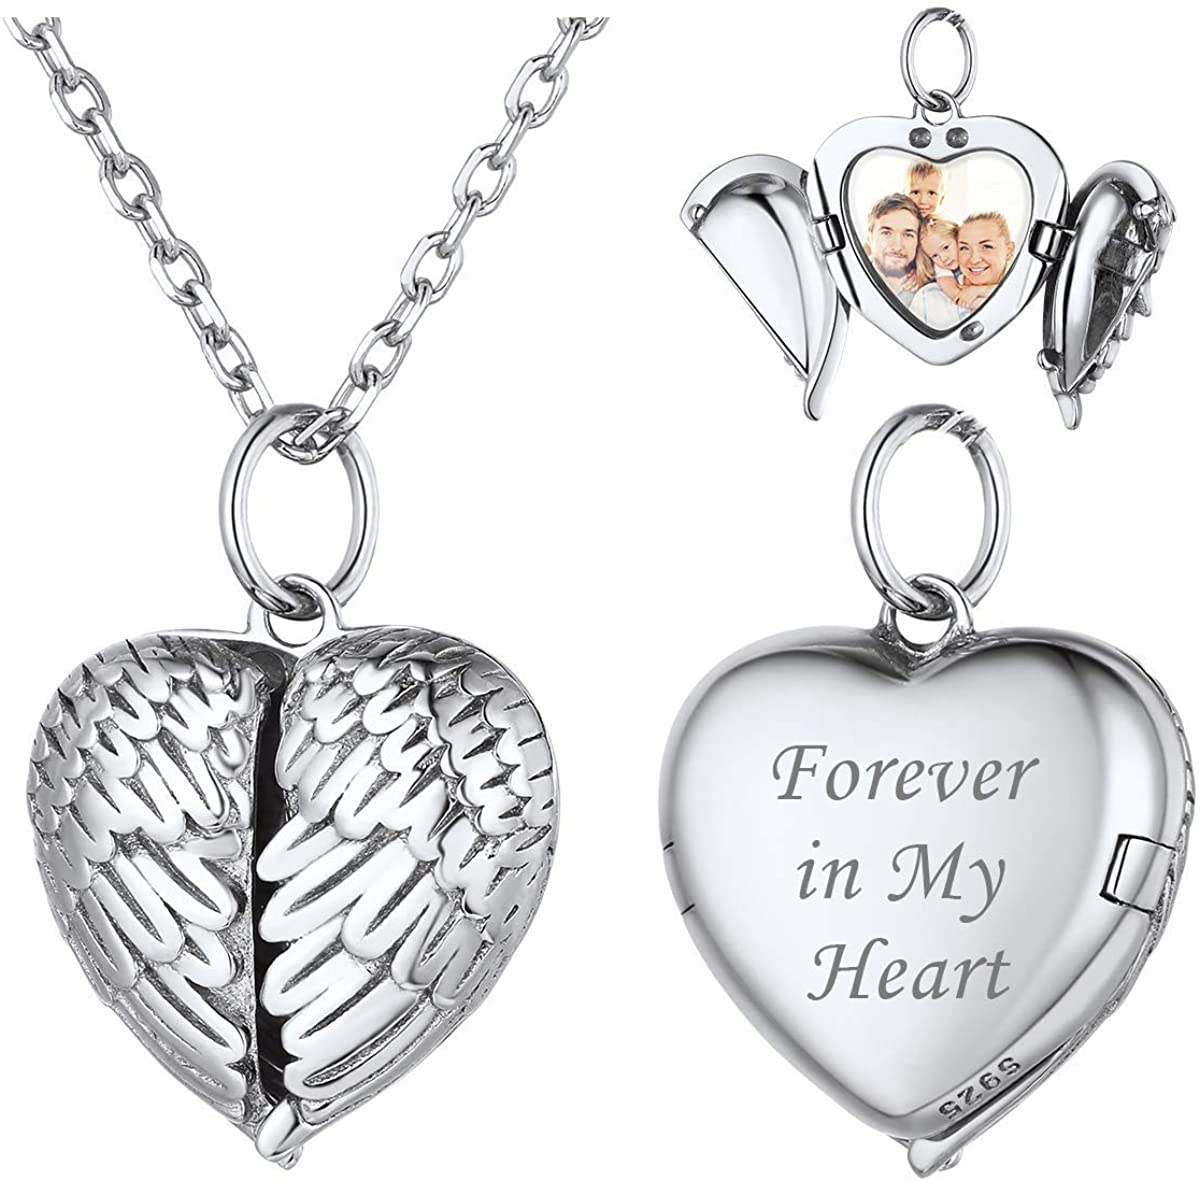 ChicSilver Personalized Heart Locket Necklace 925 Sterling Silver/18K Gold/Rose Gold Plated Guardian Angel Custom Photo Necklace Customized Picture Jewelry Gift for Women Men(with Gift Box)